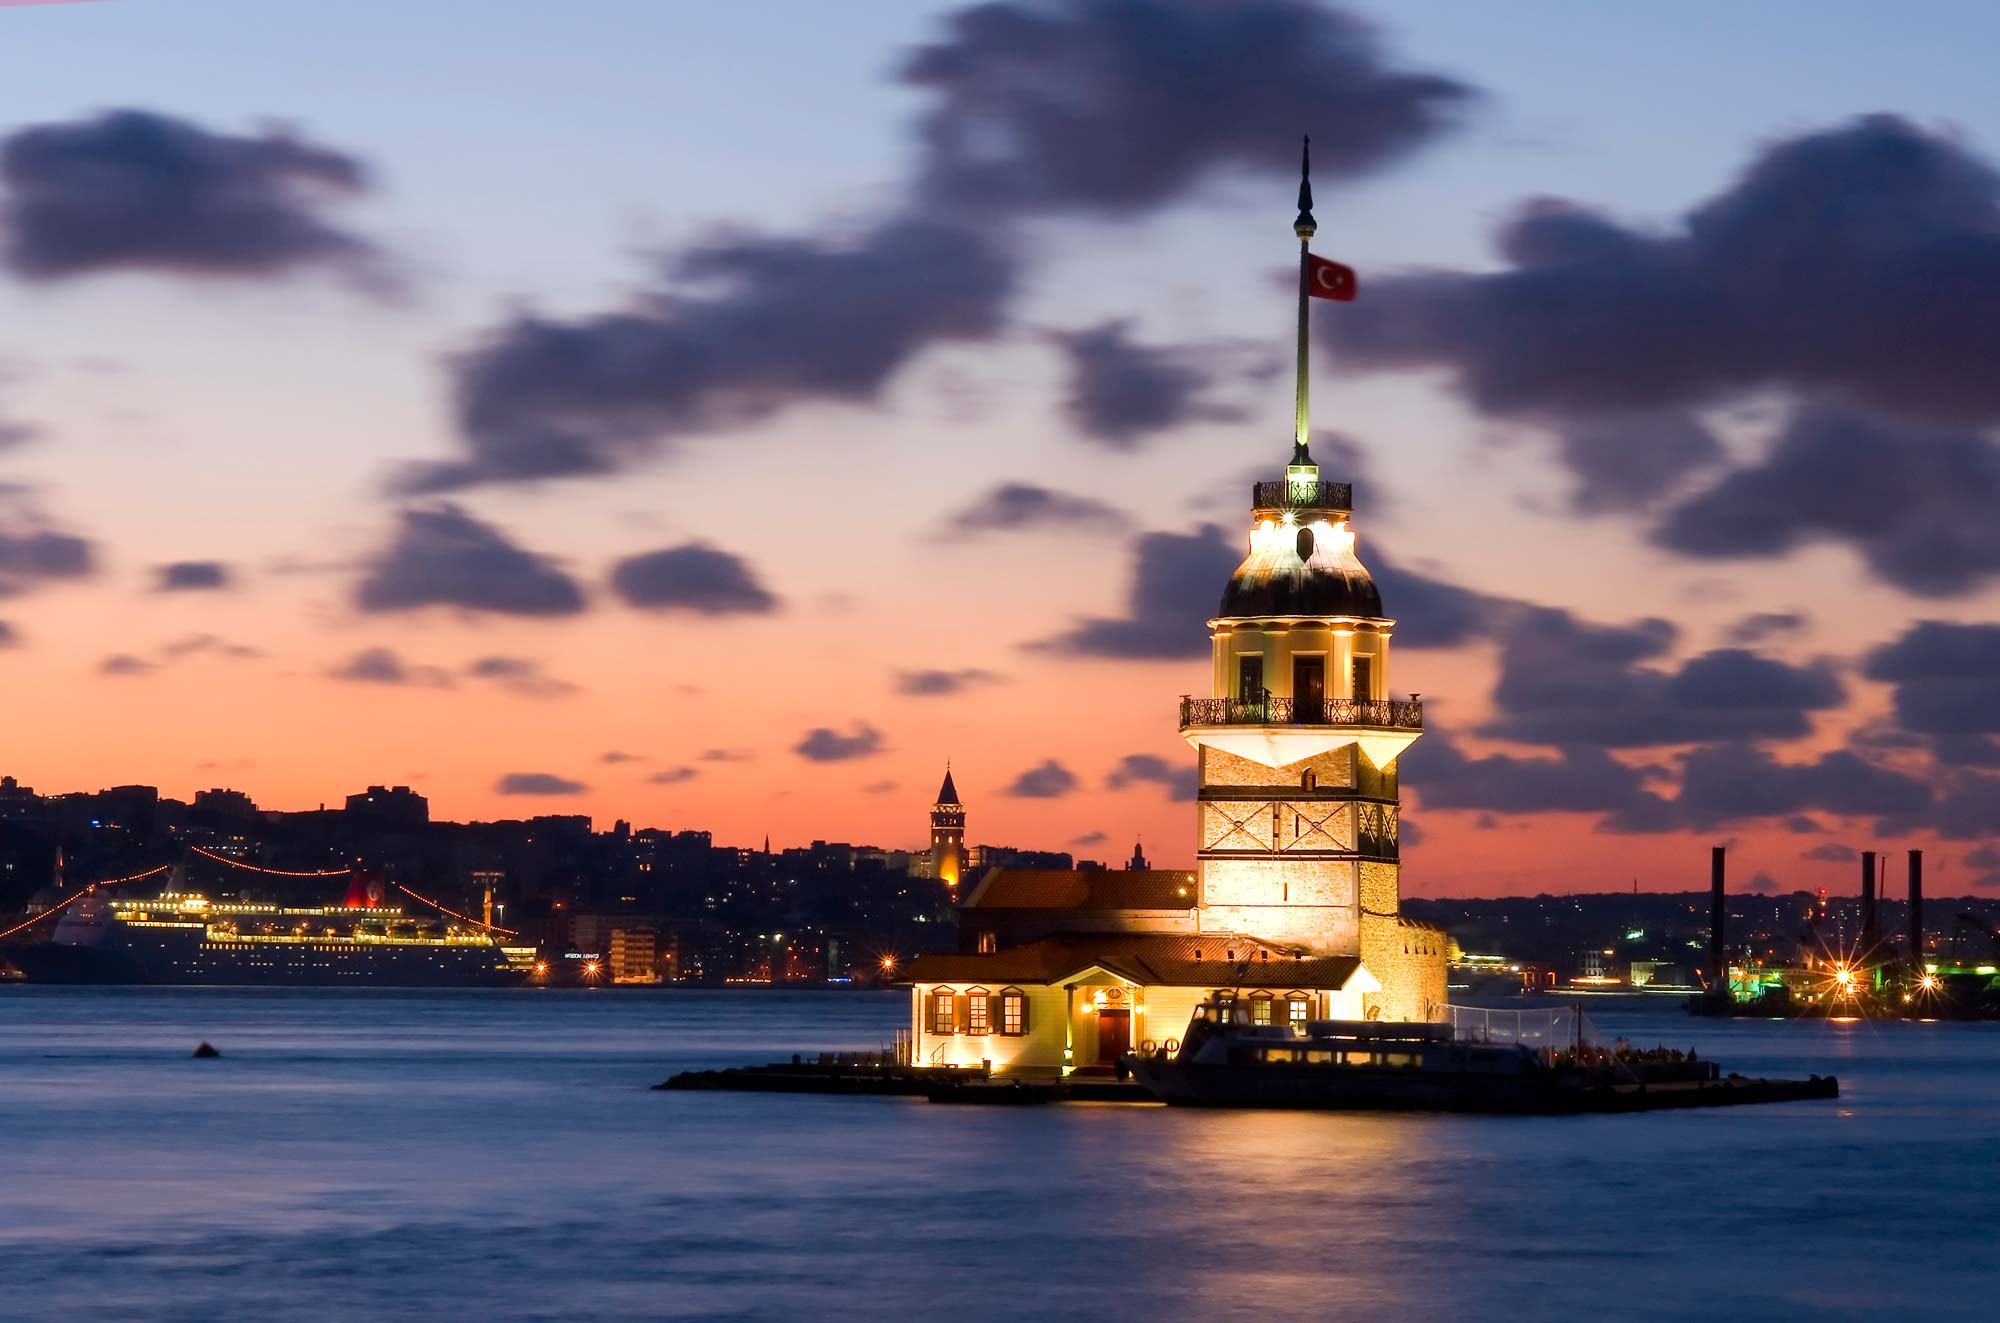 Istanbul City Wallpapers Wide Screen Wallpaper 1080p 2k 4k